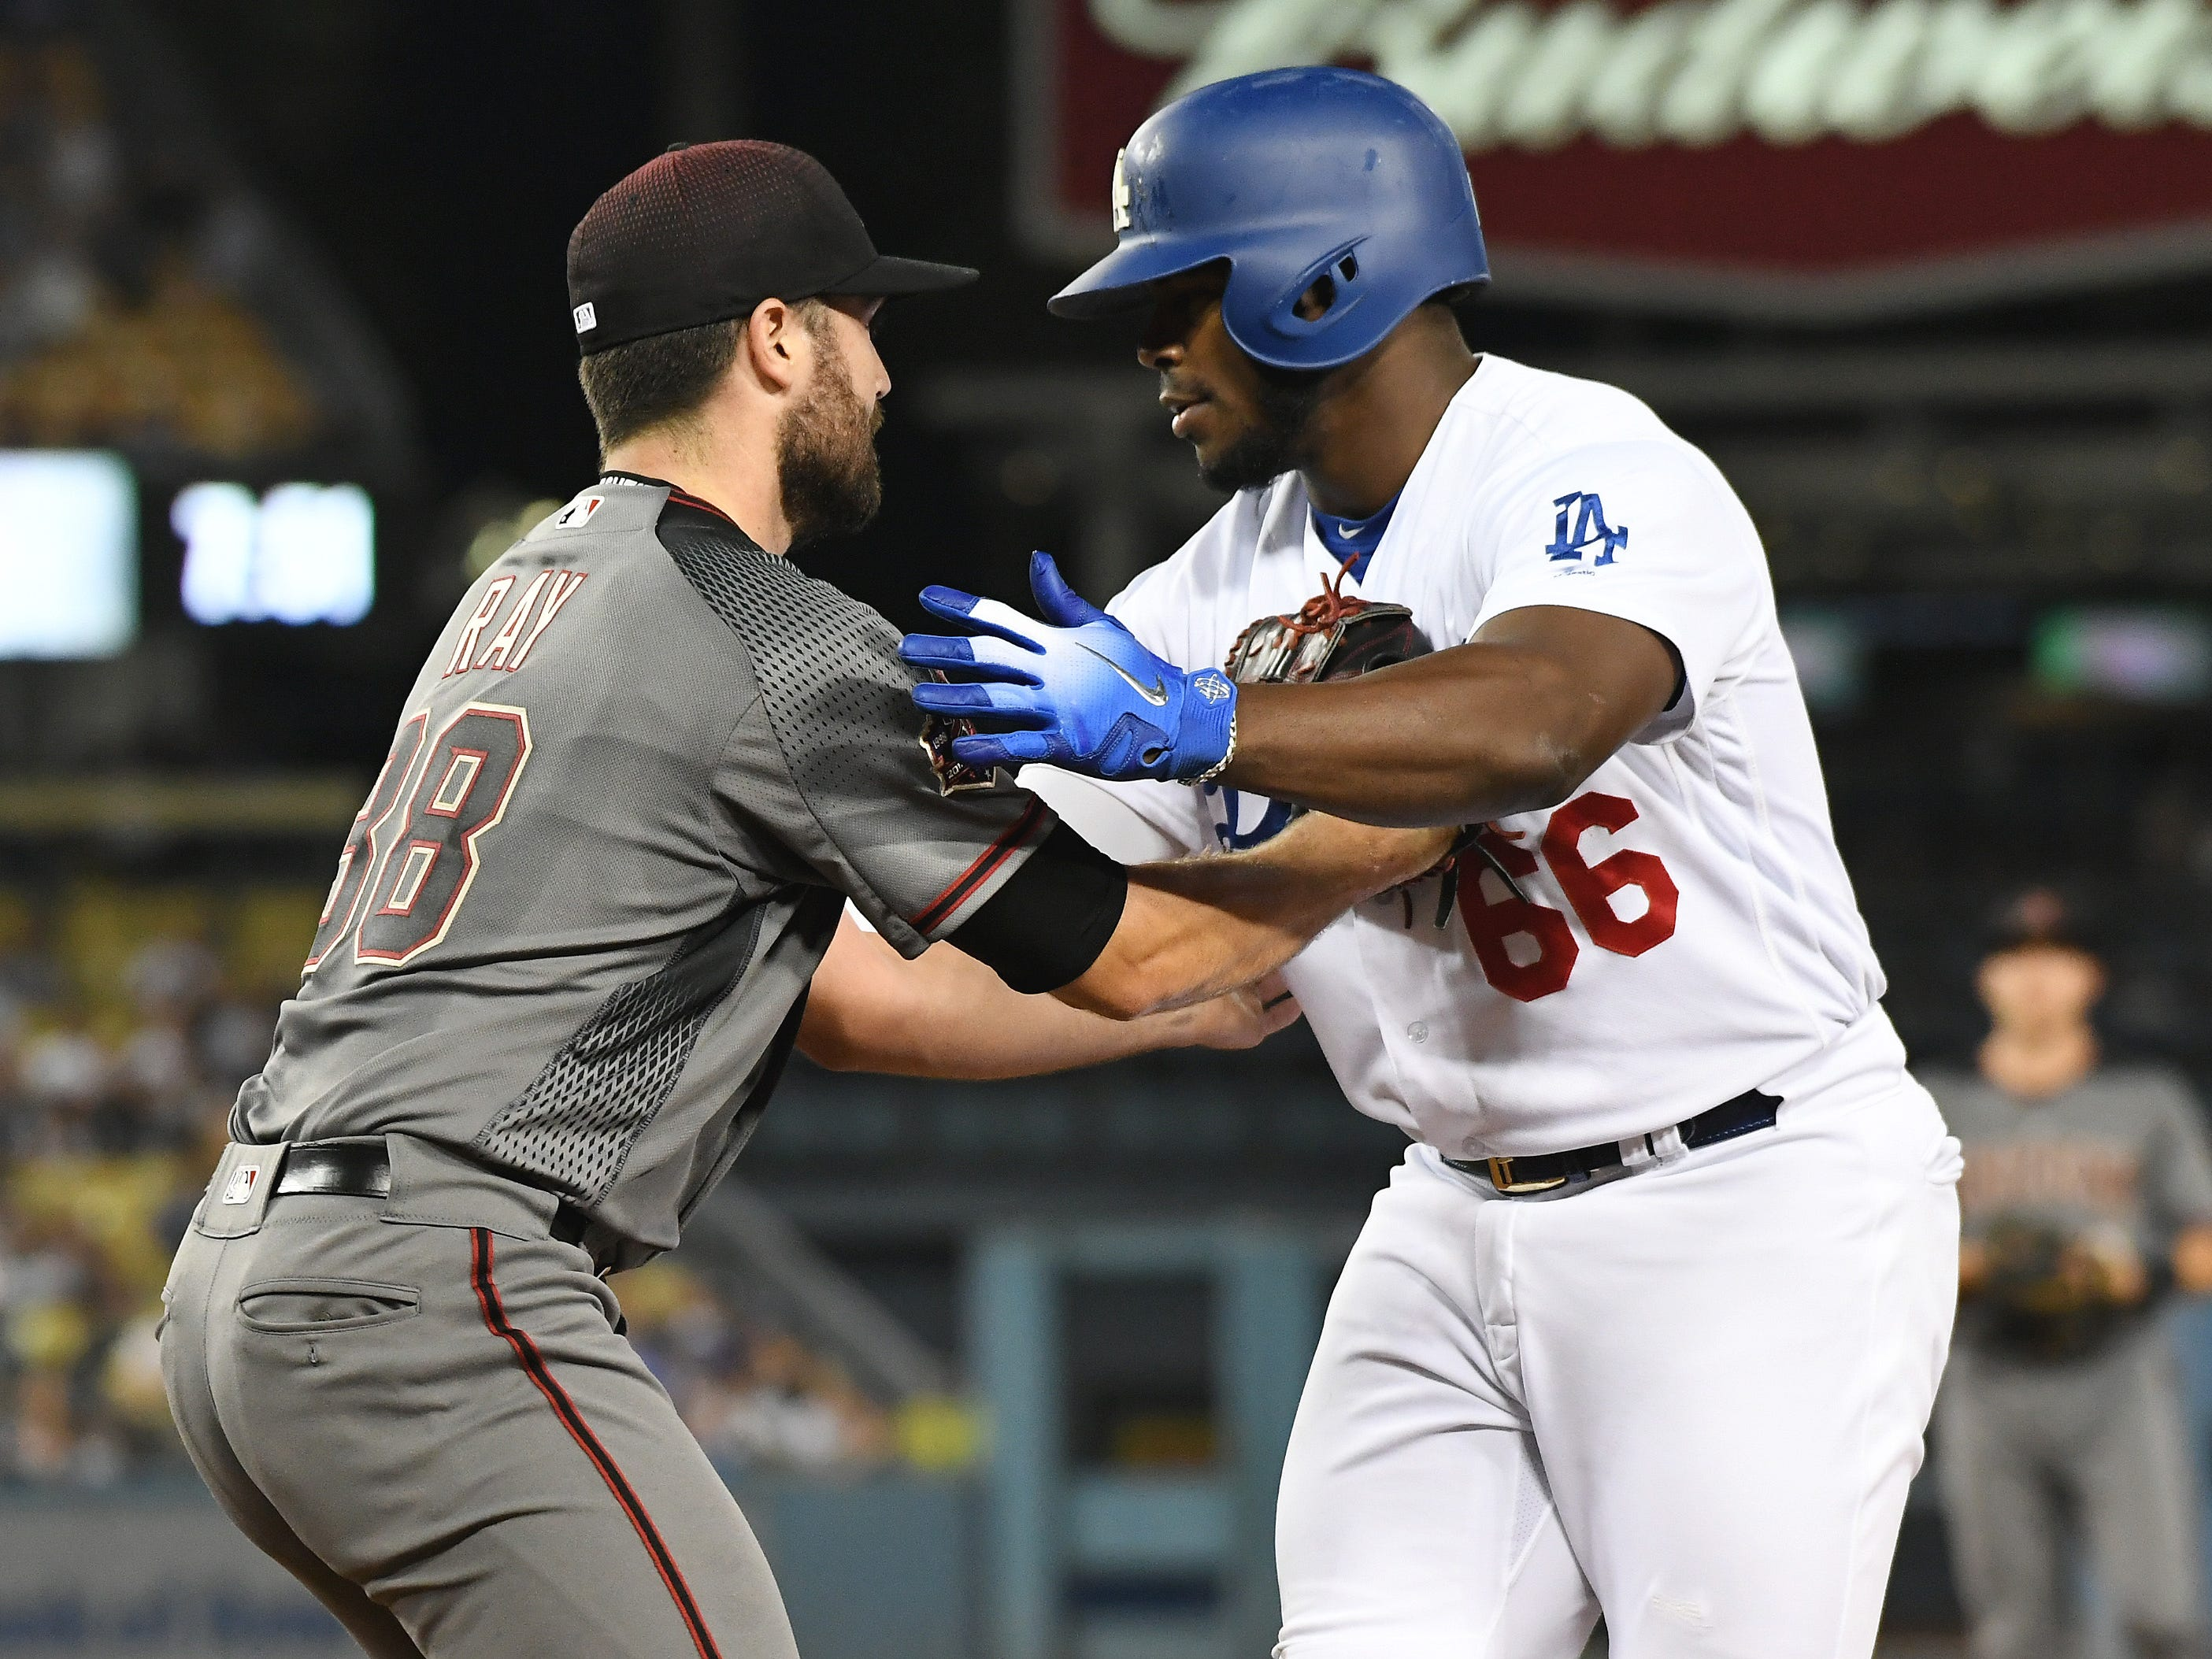 Aug 30, 2018; Los Angeles, CA, USA; Arizona Diamondbacks starting pitcher Robbie Ray (38) tags out Los Angeles Dodgers right fielder Yasiel Puig (66) at first base in the second inning at Dodger Stadium. Mandatory Credit: Richard Mackson-USA TODAY Sports